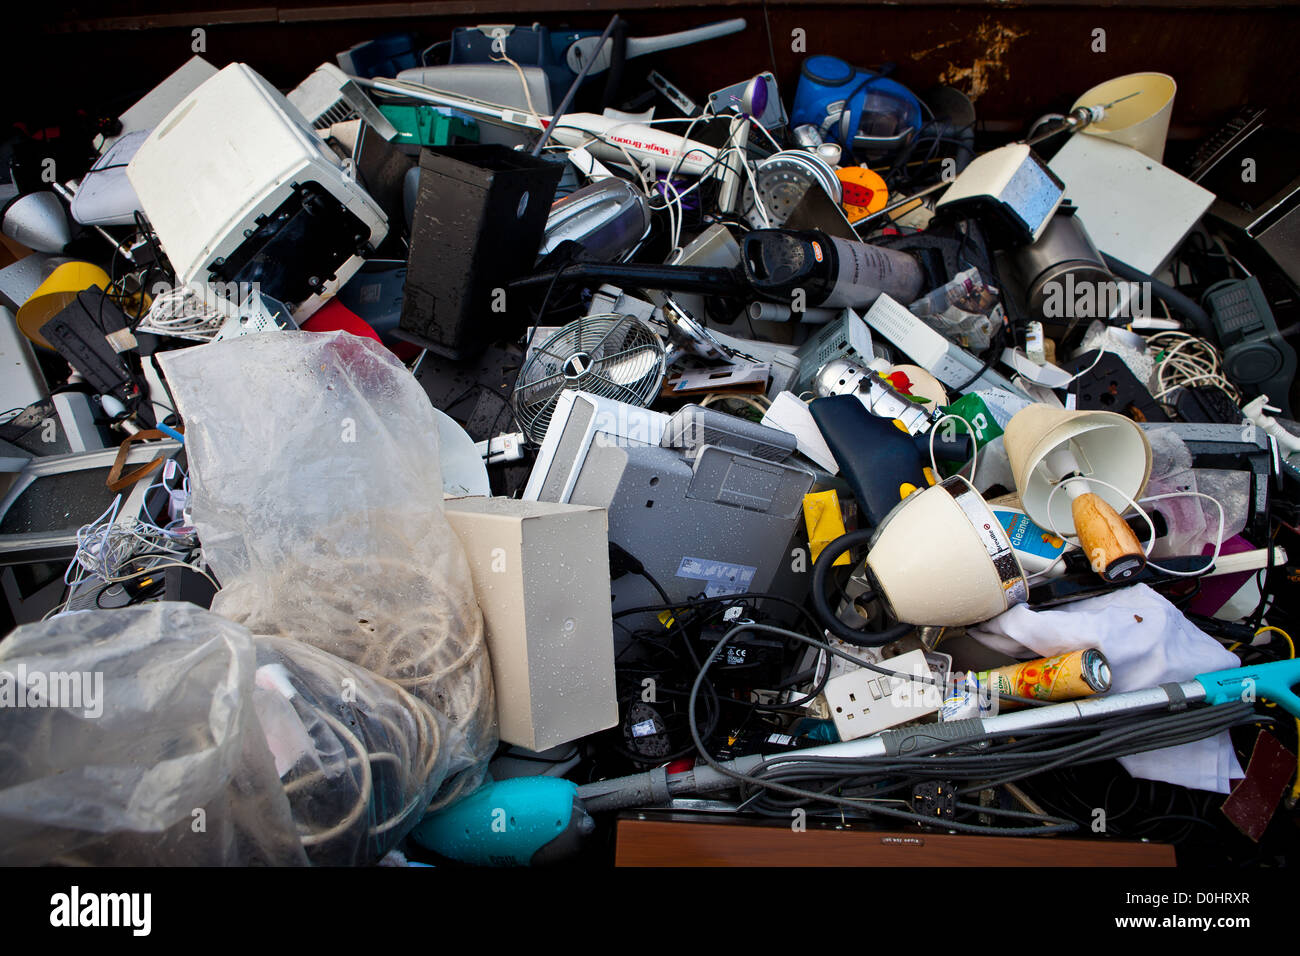 Hornsey Household Waste Recycling Centre, Haringey - Stock Image